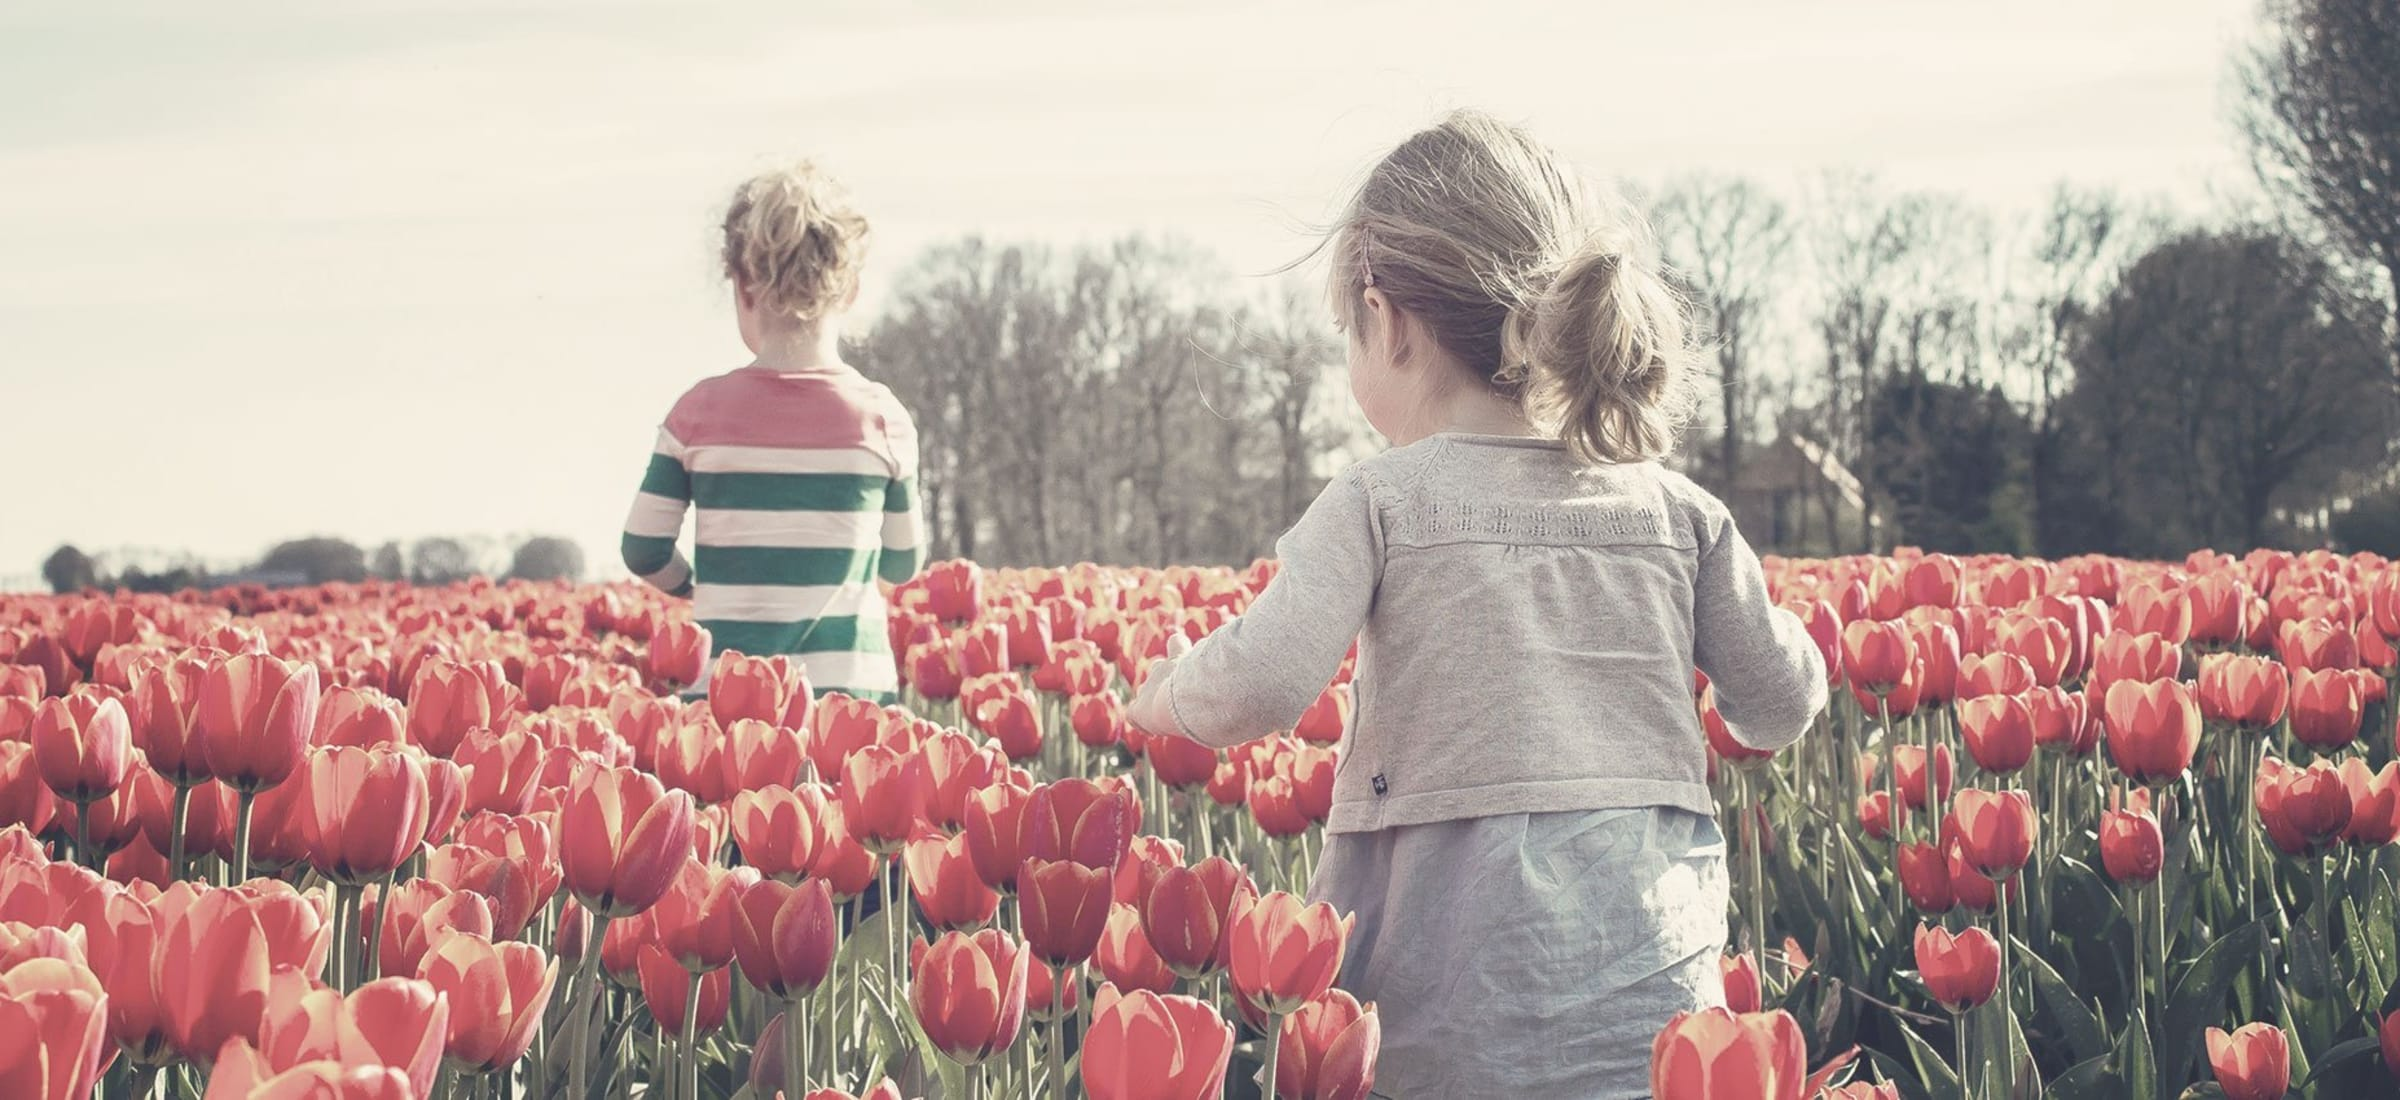 Kids in field of flowers